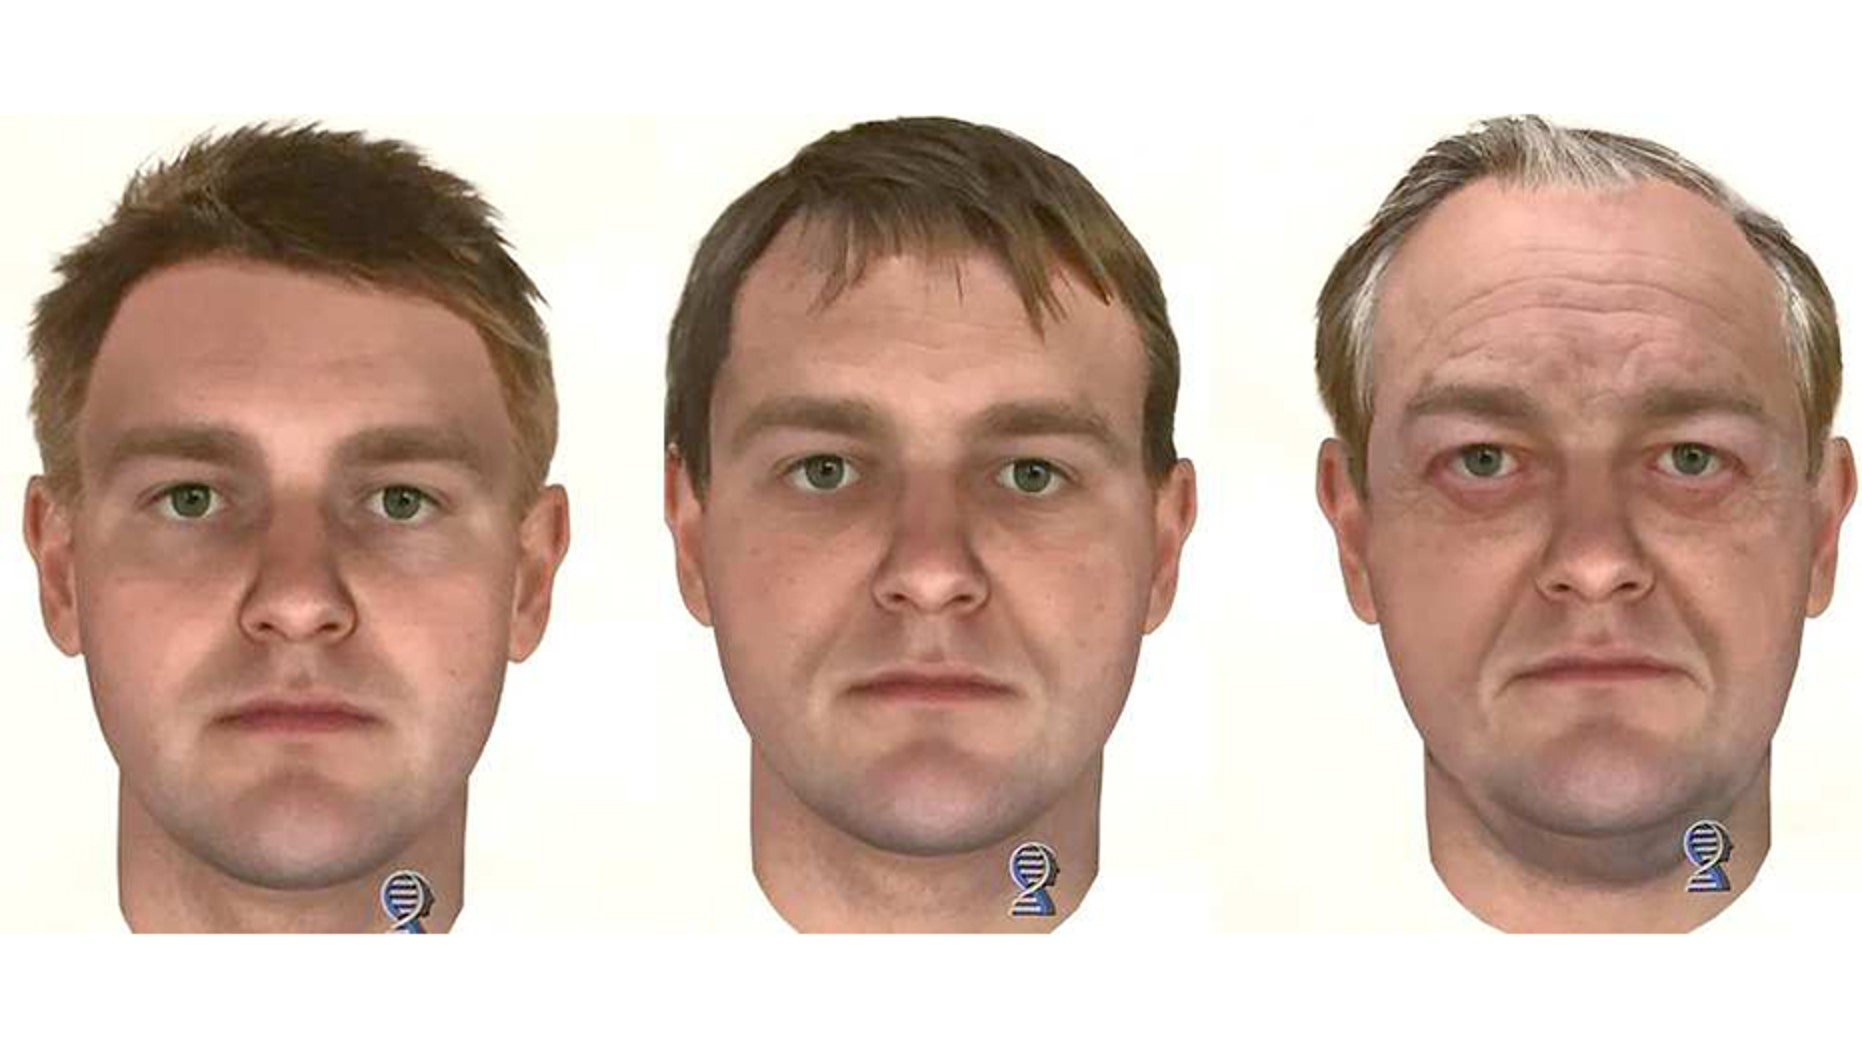 Washington state authorities investigating the 1987 cold case killings of a young Canadian couple released last week DNA composite images of the suspect and what he may have looked like in his 20s, 40s, and 60s.